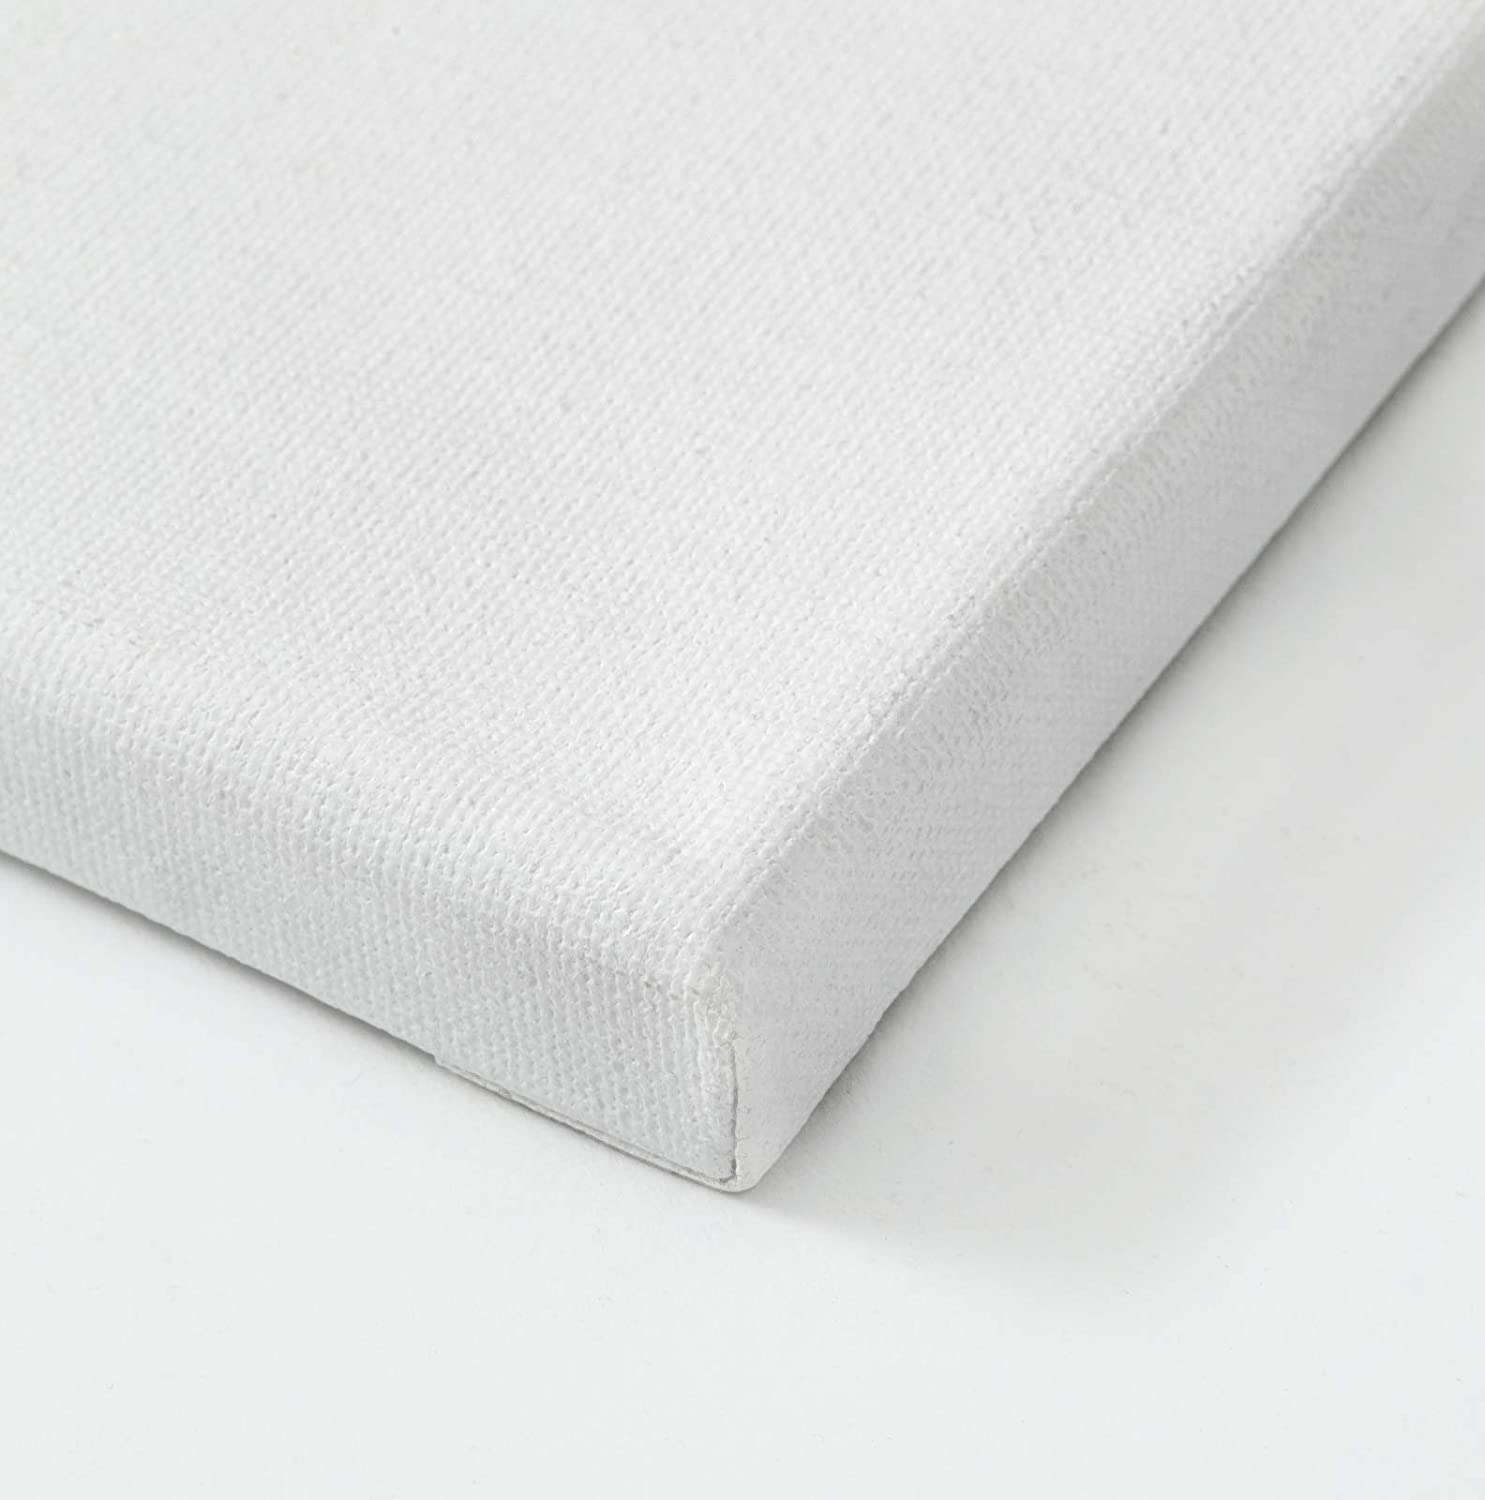 miniature 10 - Americanflat Stretched Canvas in White 100% Cotton Wooden Frames & Acid Free